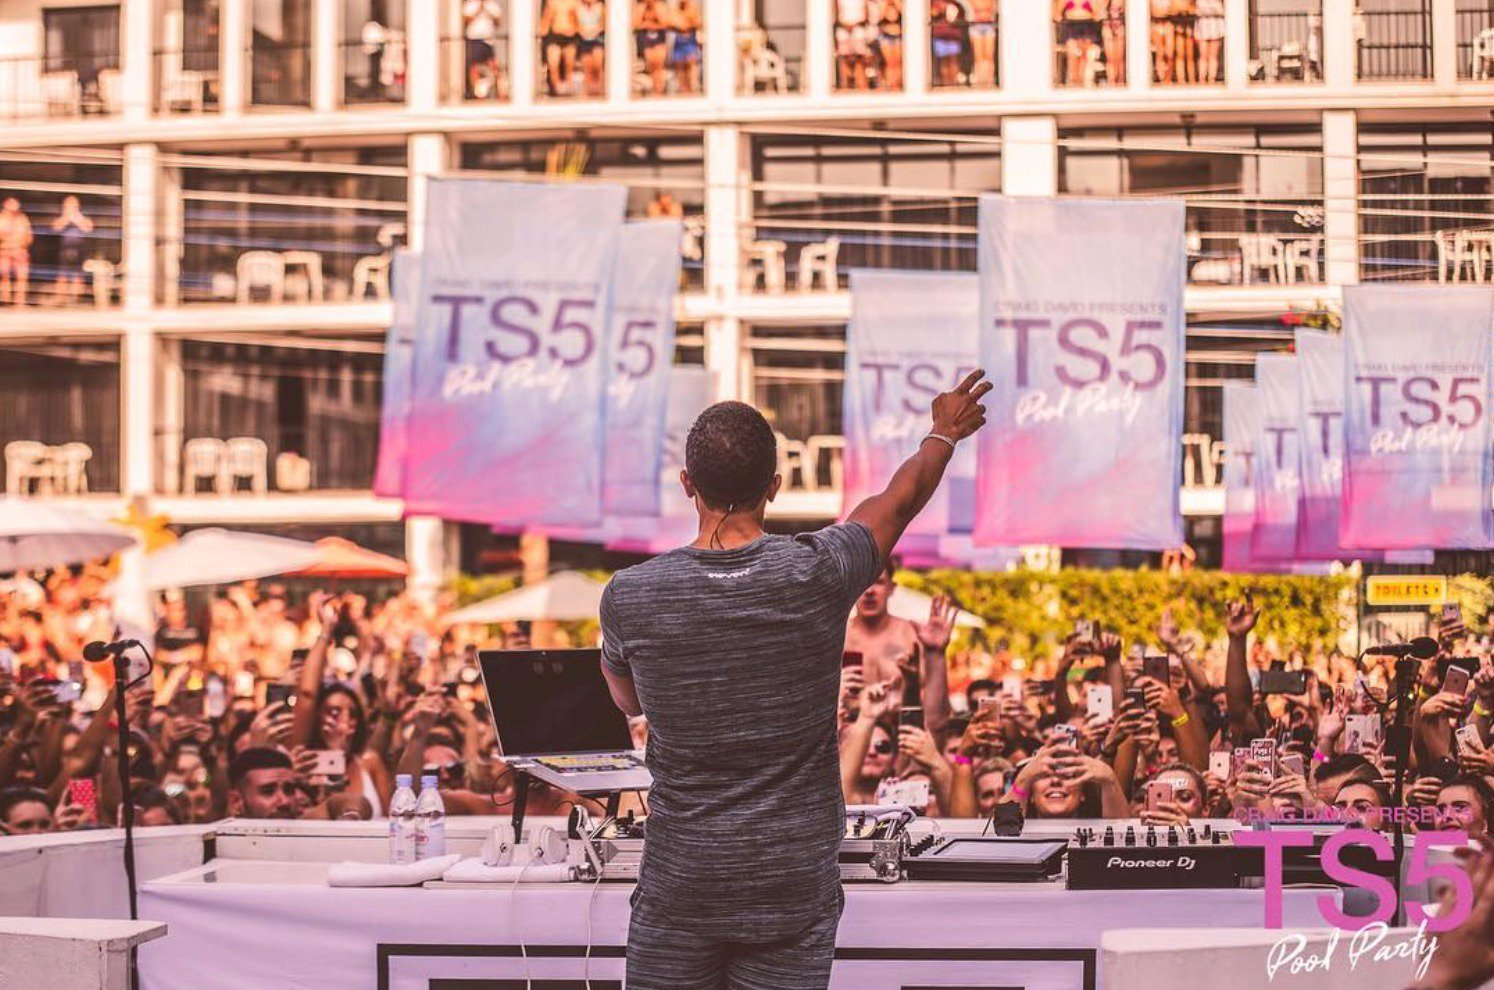 Can't wait to do this again this summer in Ibiza ☀️🌴 Who's coming to a @TS5 pool party this year? 🎉 🔊 https://t.co/0fa5mdyK2U